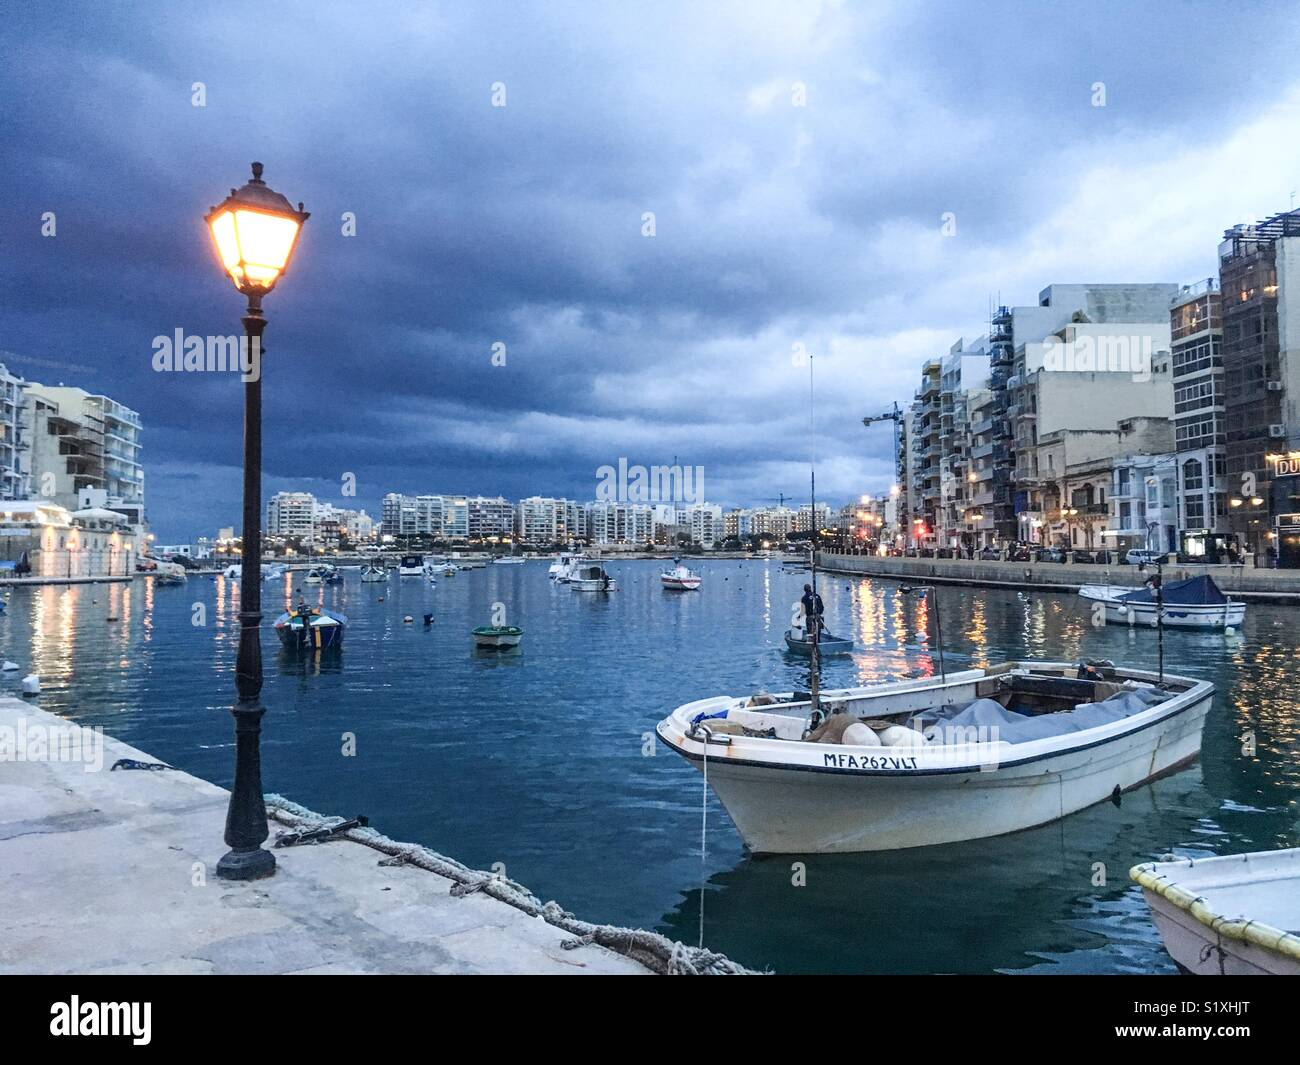 Ciel orageux sur la baie de Spinola, St Julians, Malte Photo Stock